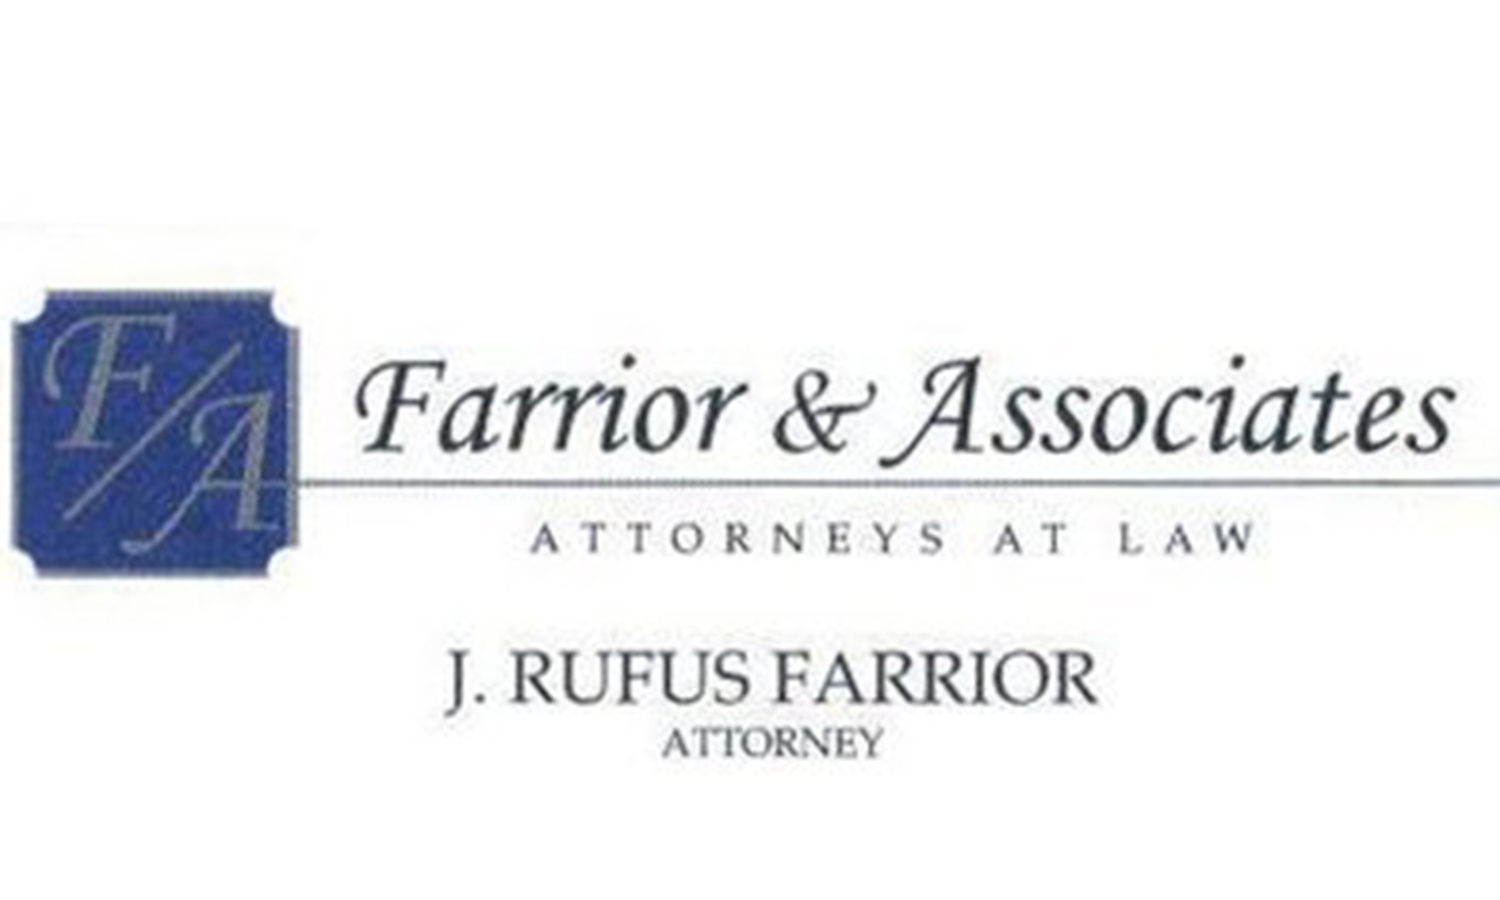 Farrior & Associates Attorneys at Law